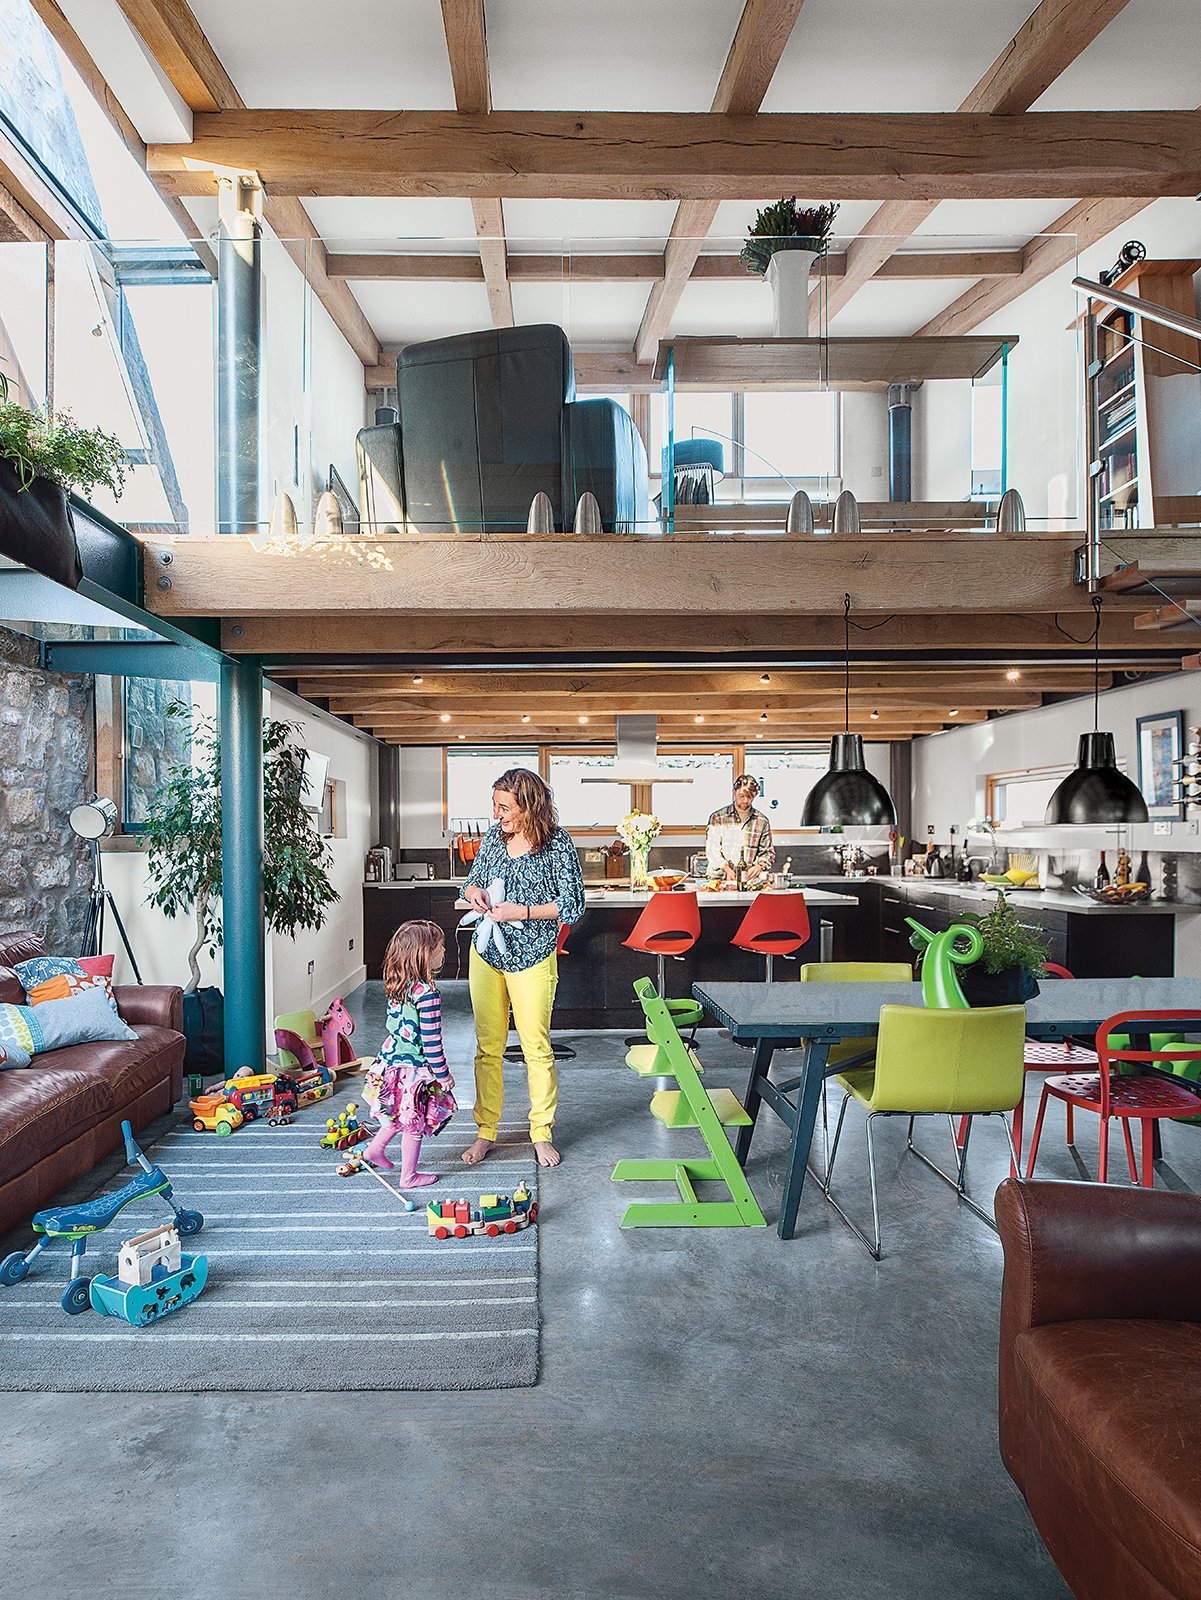 The bottom floor contains the kitchen and the dining area; the lounge is upstairs. The cabinets are from Ikea, as are the table and chairs, and the child's Tripp Trapp chair is from Stokke.  Colorful and Vibrant Farmhouses by Luke Hopping from This Farmhouse is a Cor-Ten Steel-Clad Dream